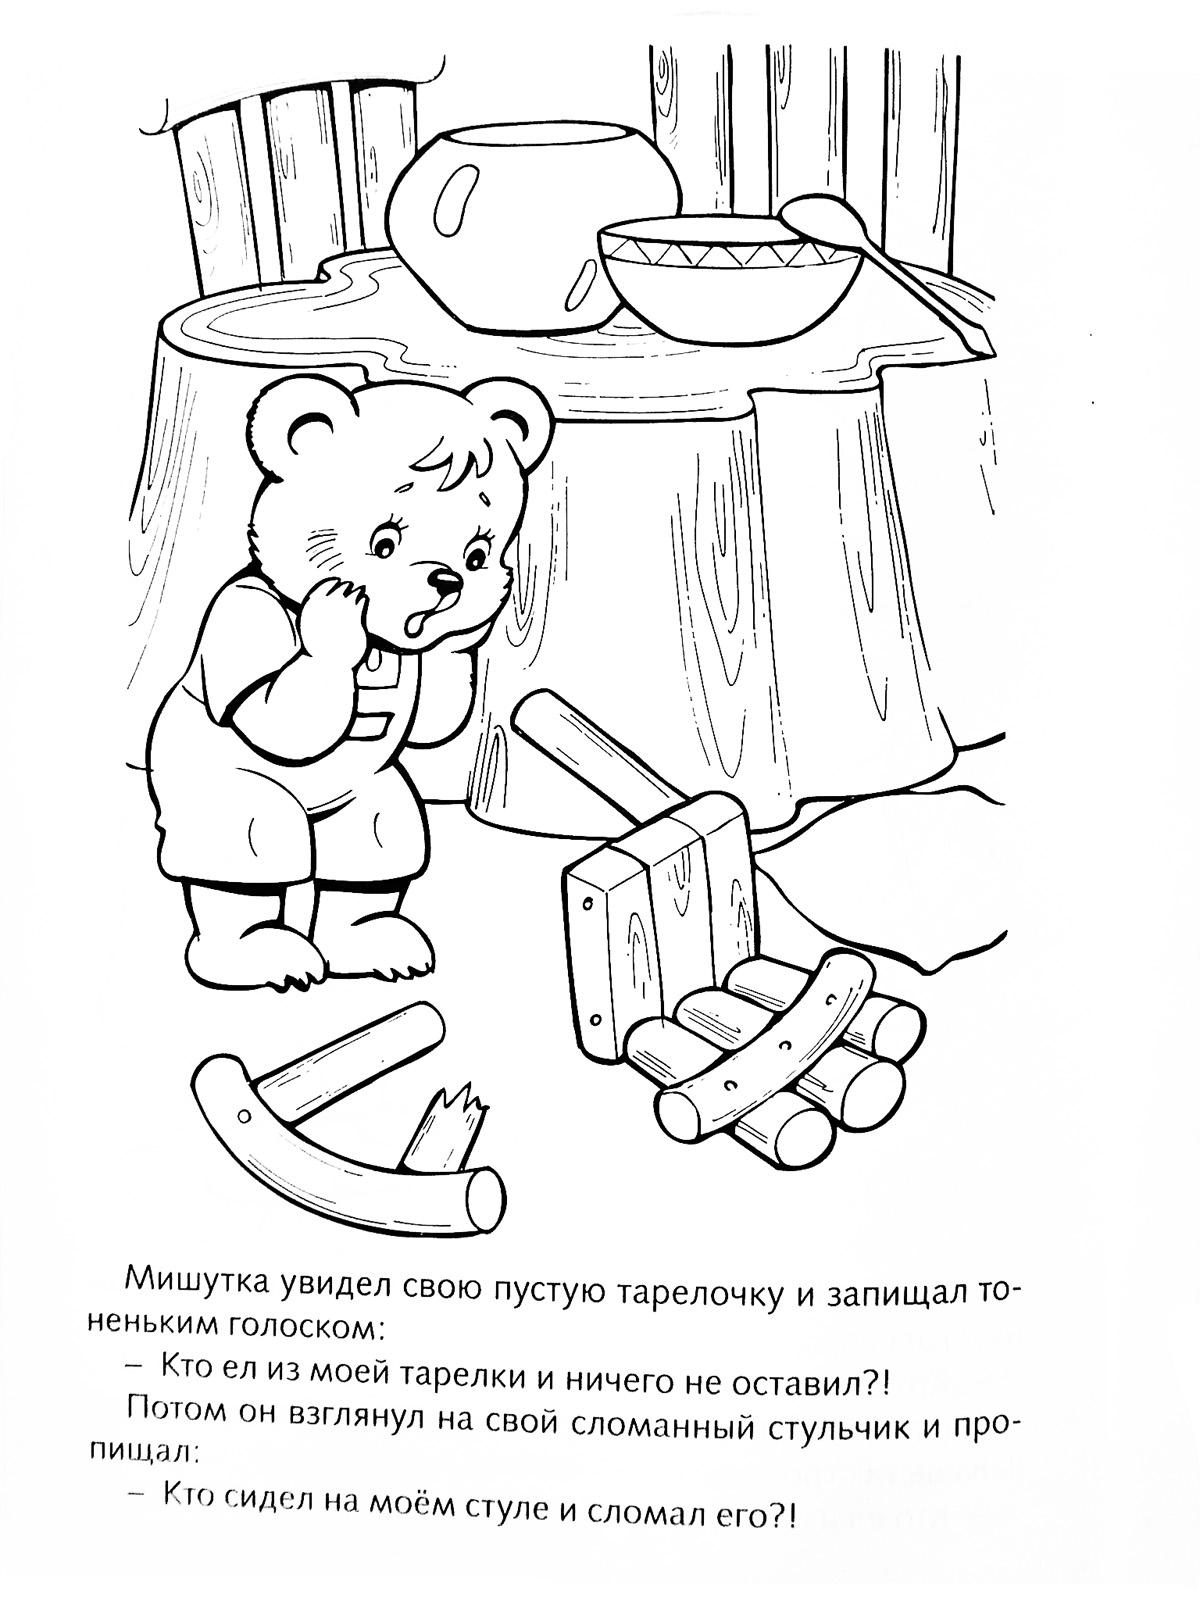 Coloring coloring pages to the tale of three bears Bear near the broken chair, the three bears